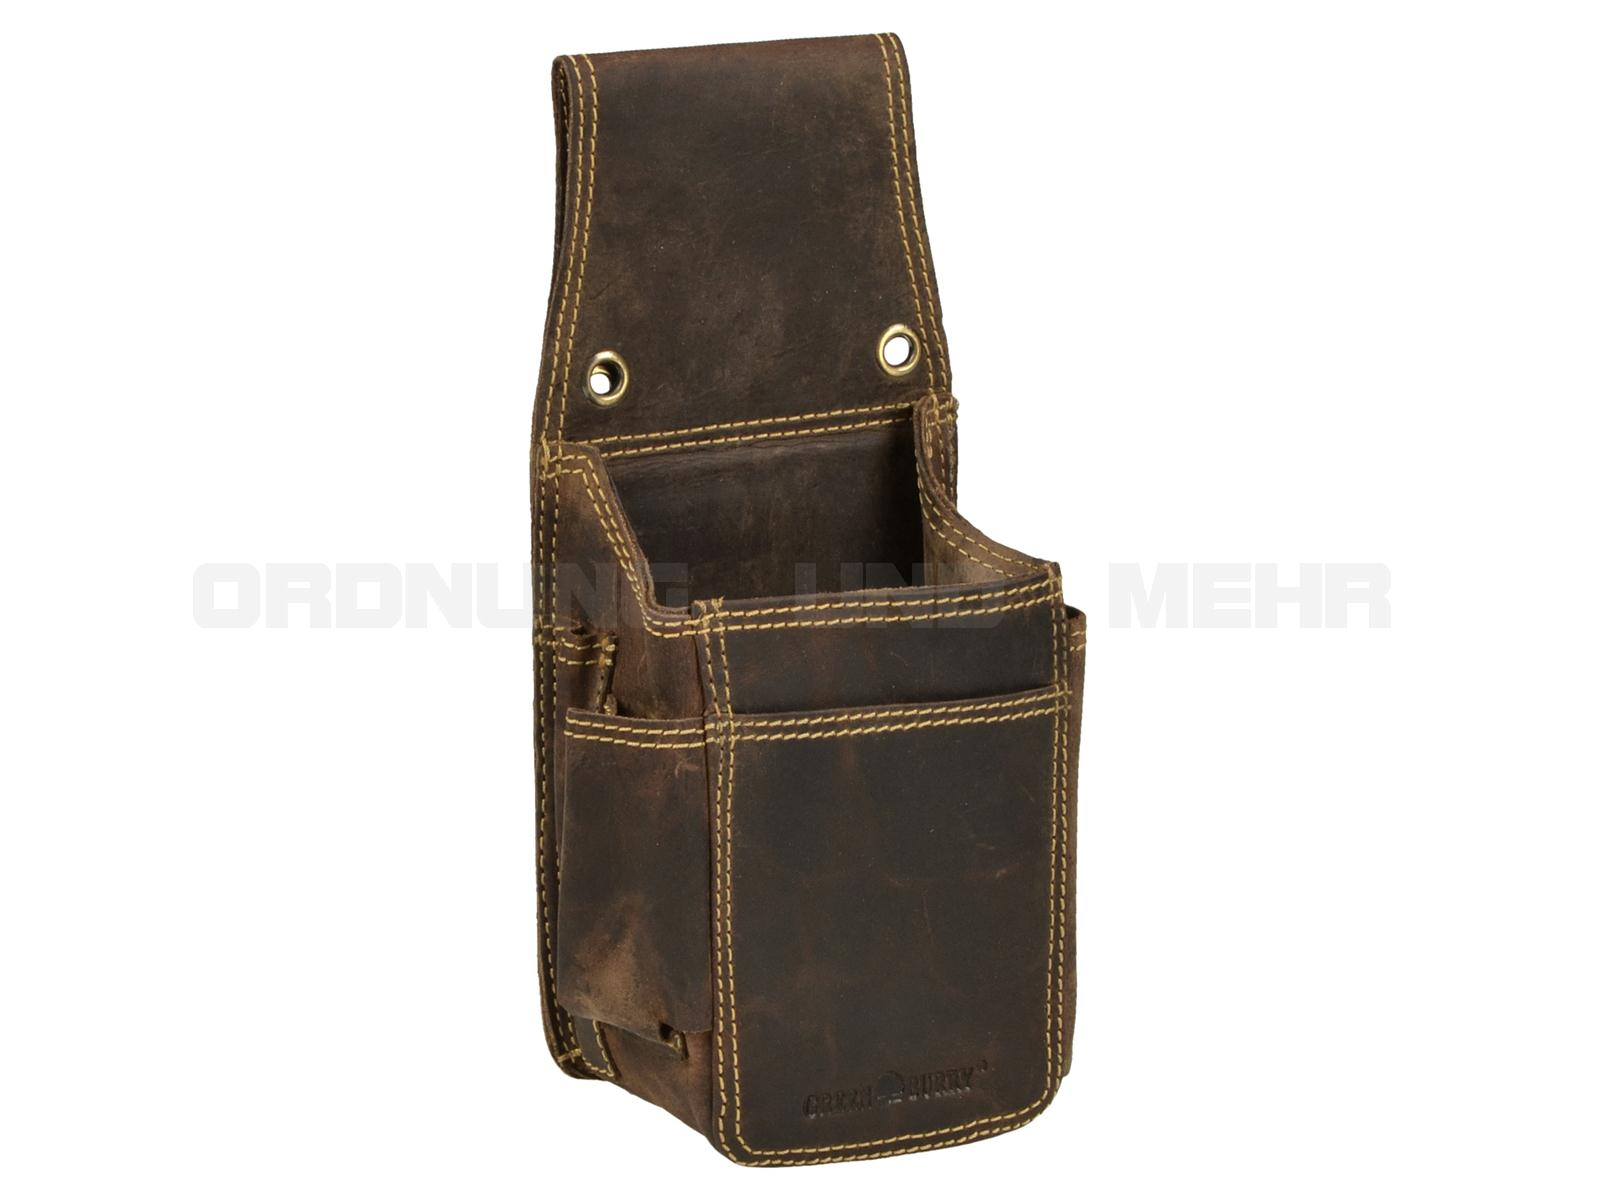 Greenburry Kellnerbörse und Kellnertasche in EXTRA STRONG Vintage HOLSTER 1786-ES-25